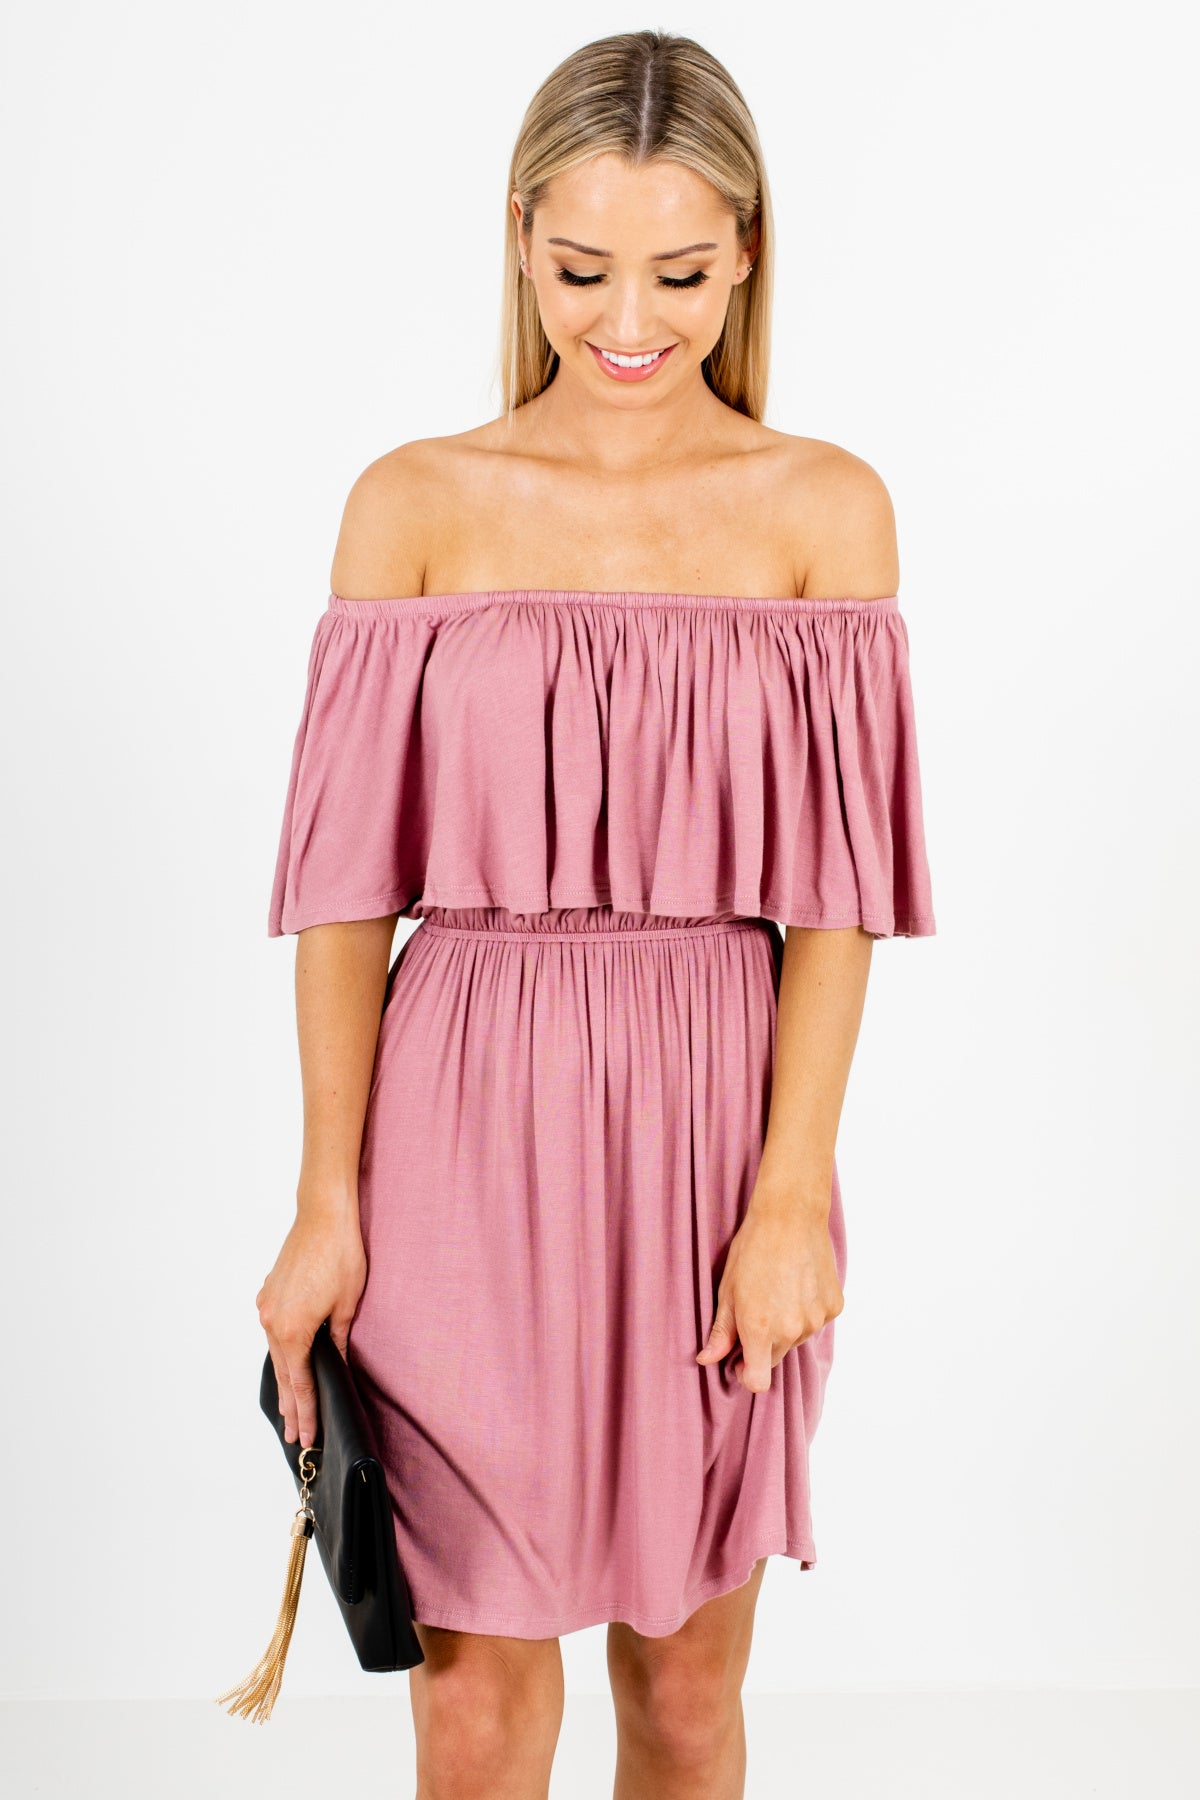 Light Mauve Pink Purple Off Shoulder Elastic Waistband Mini Dresses